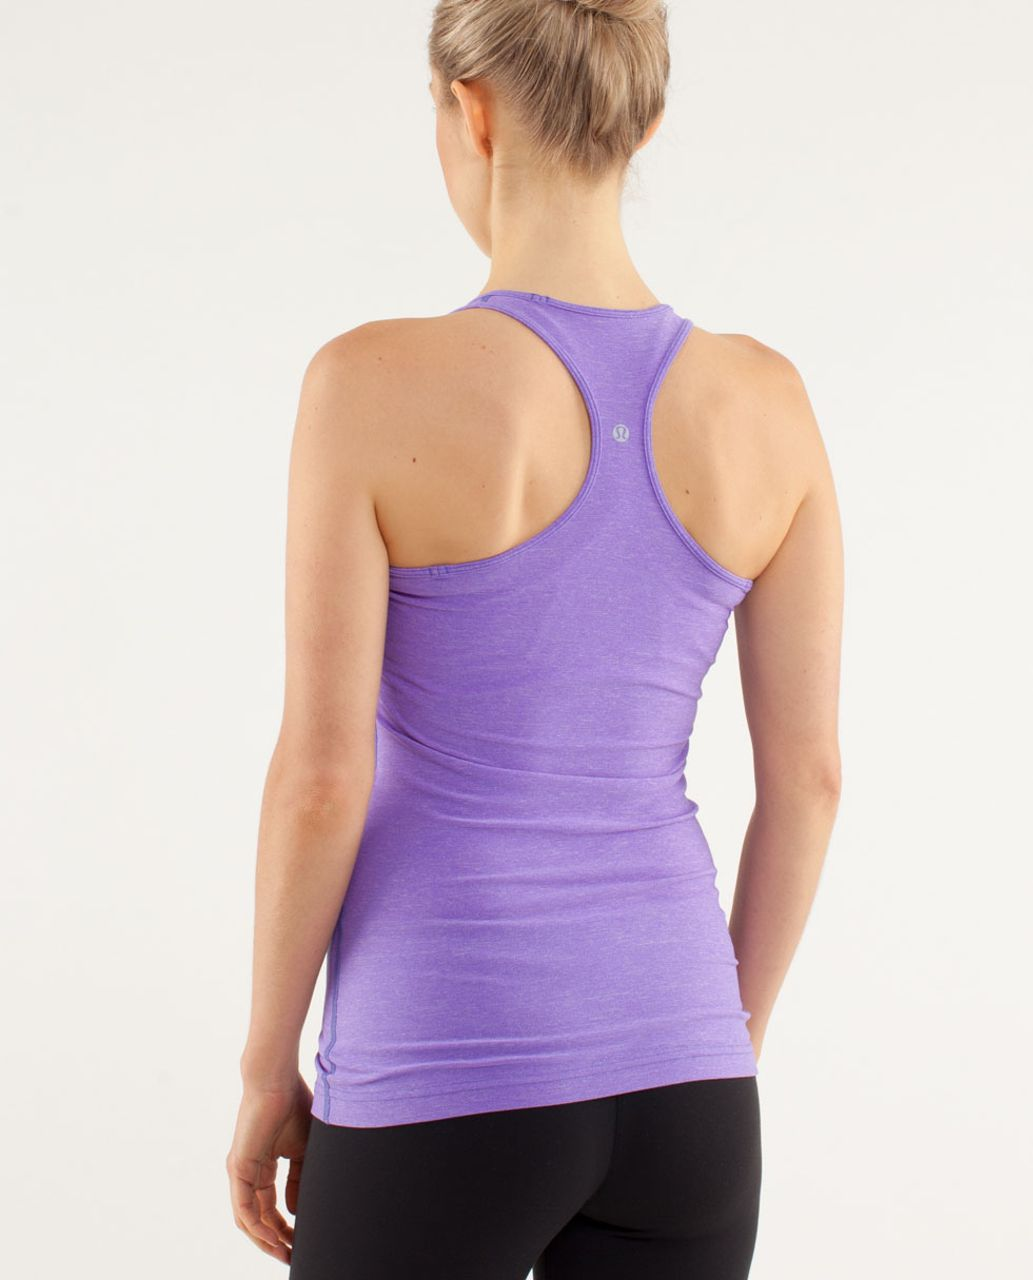 Lululemon Cool Racerback - Heathered Power Purple